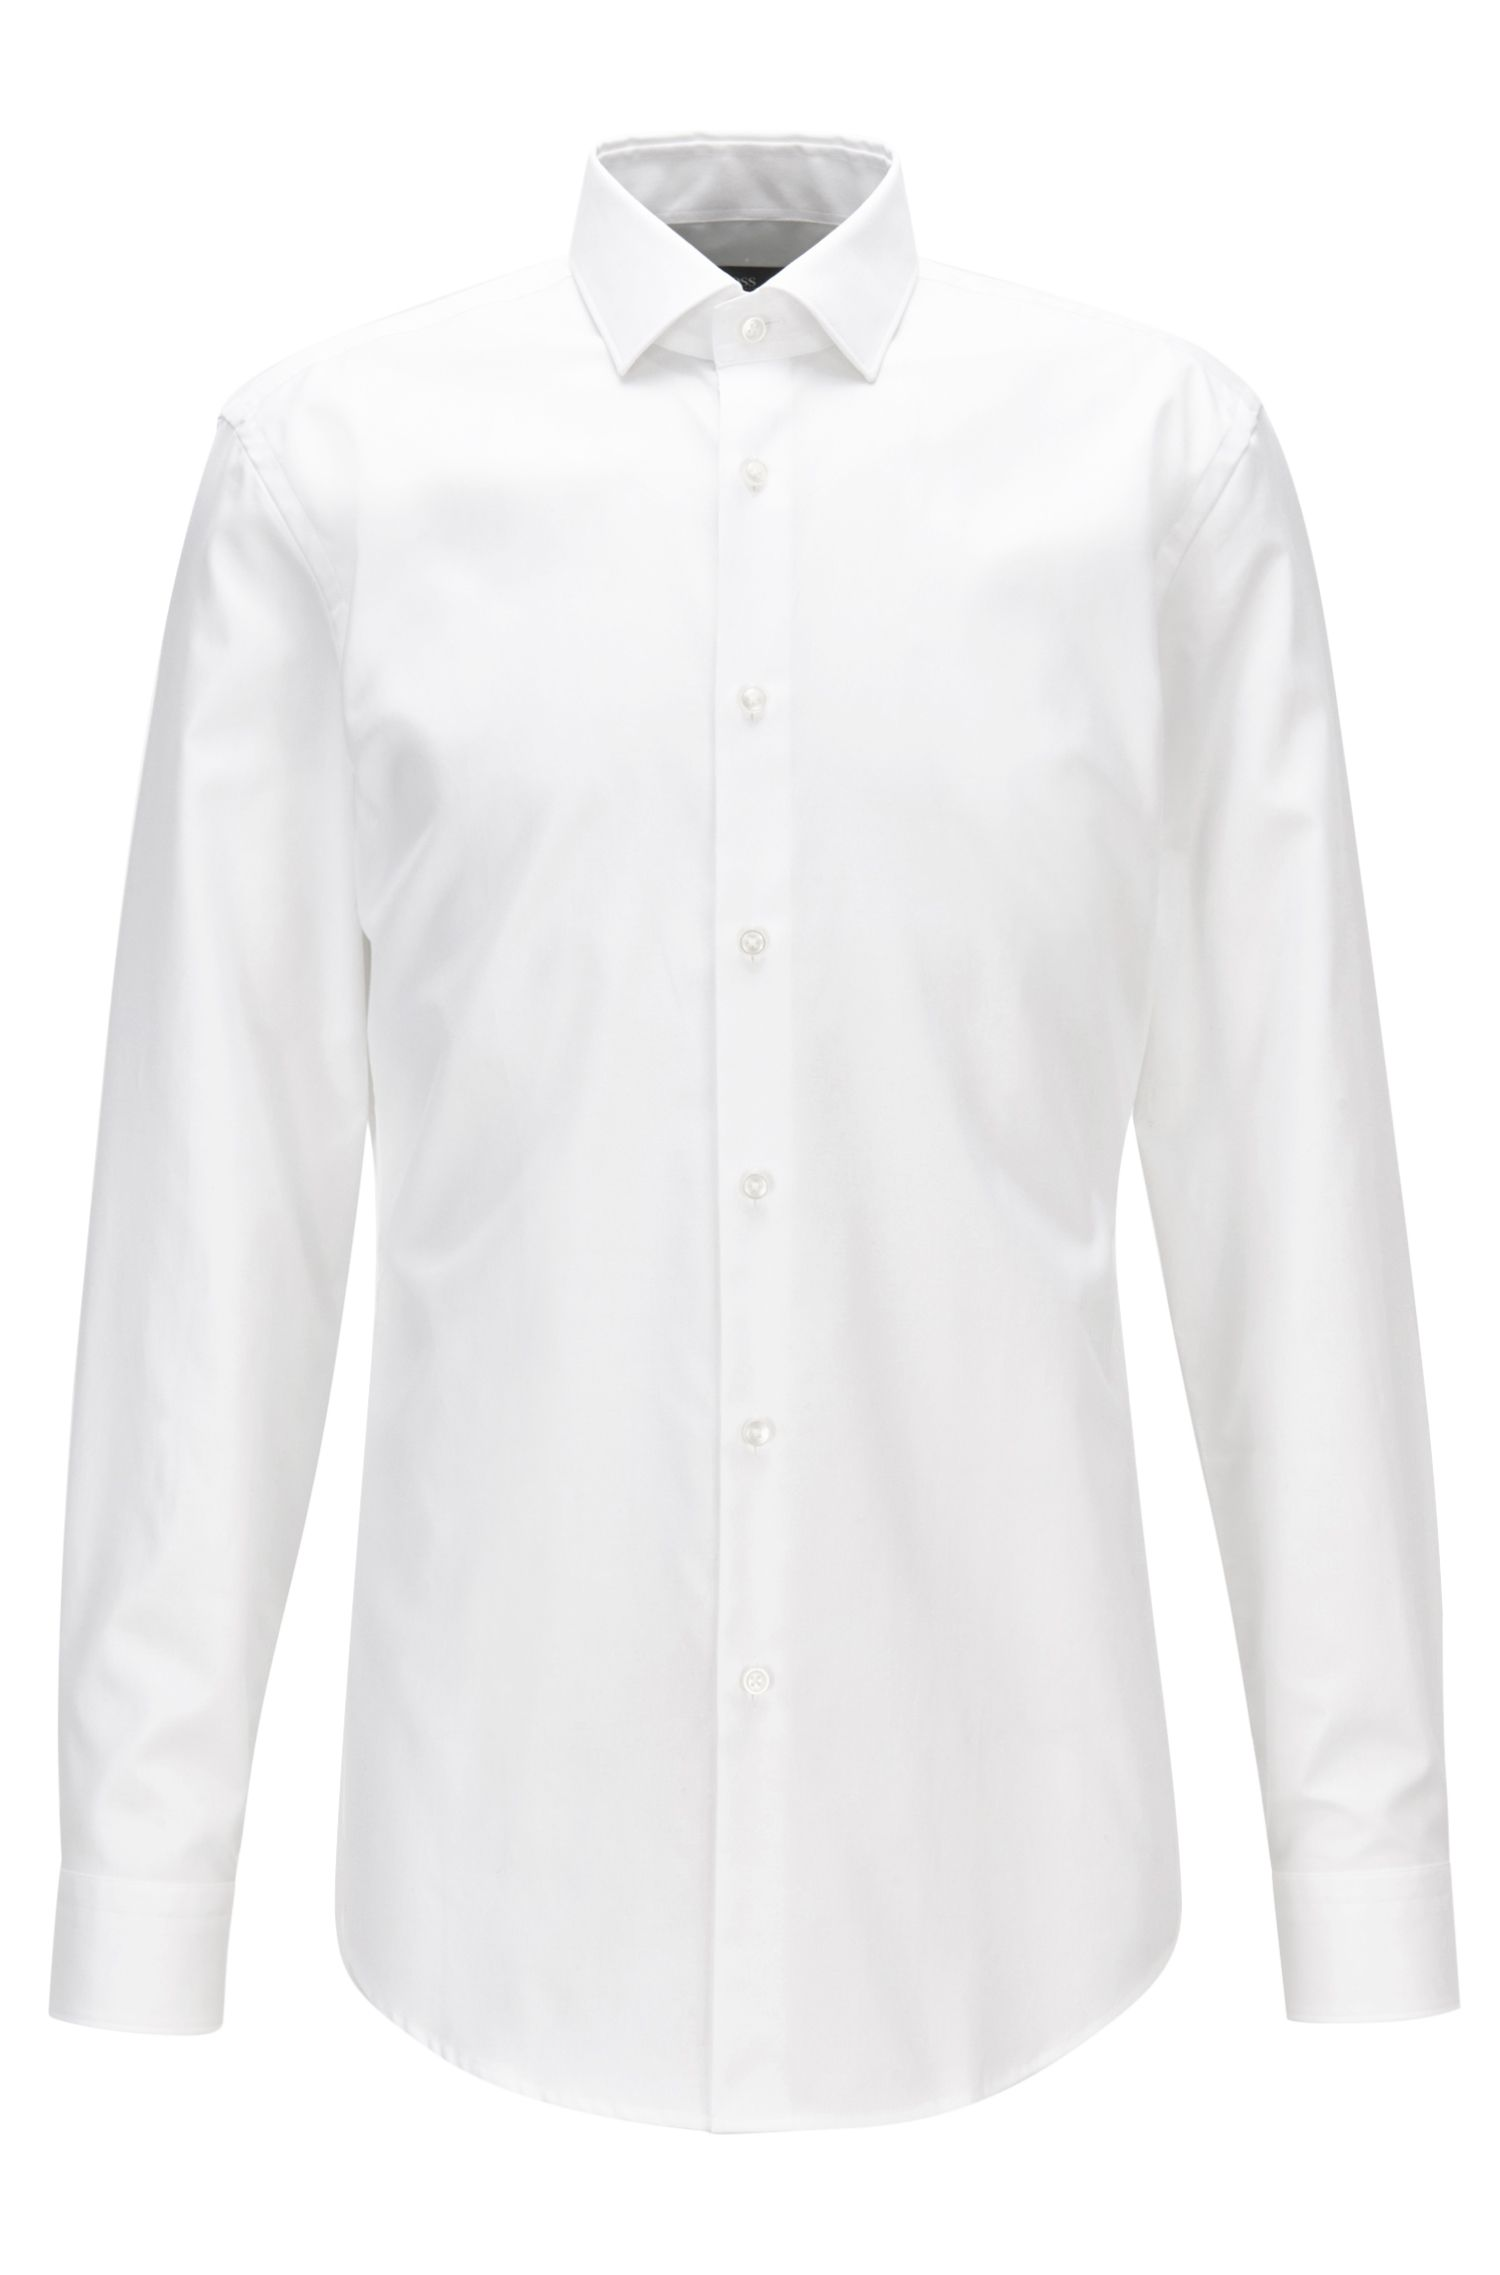 Slim-fit shirt in pure cotton twill